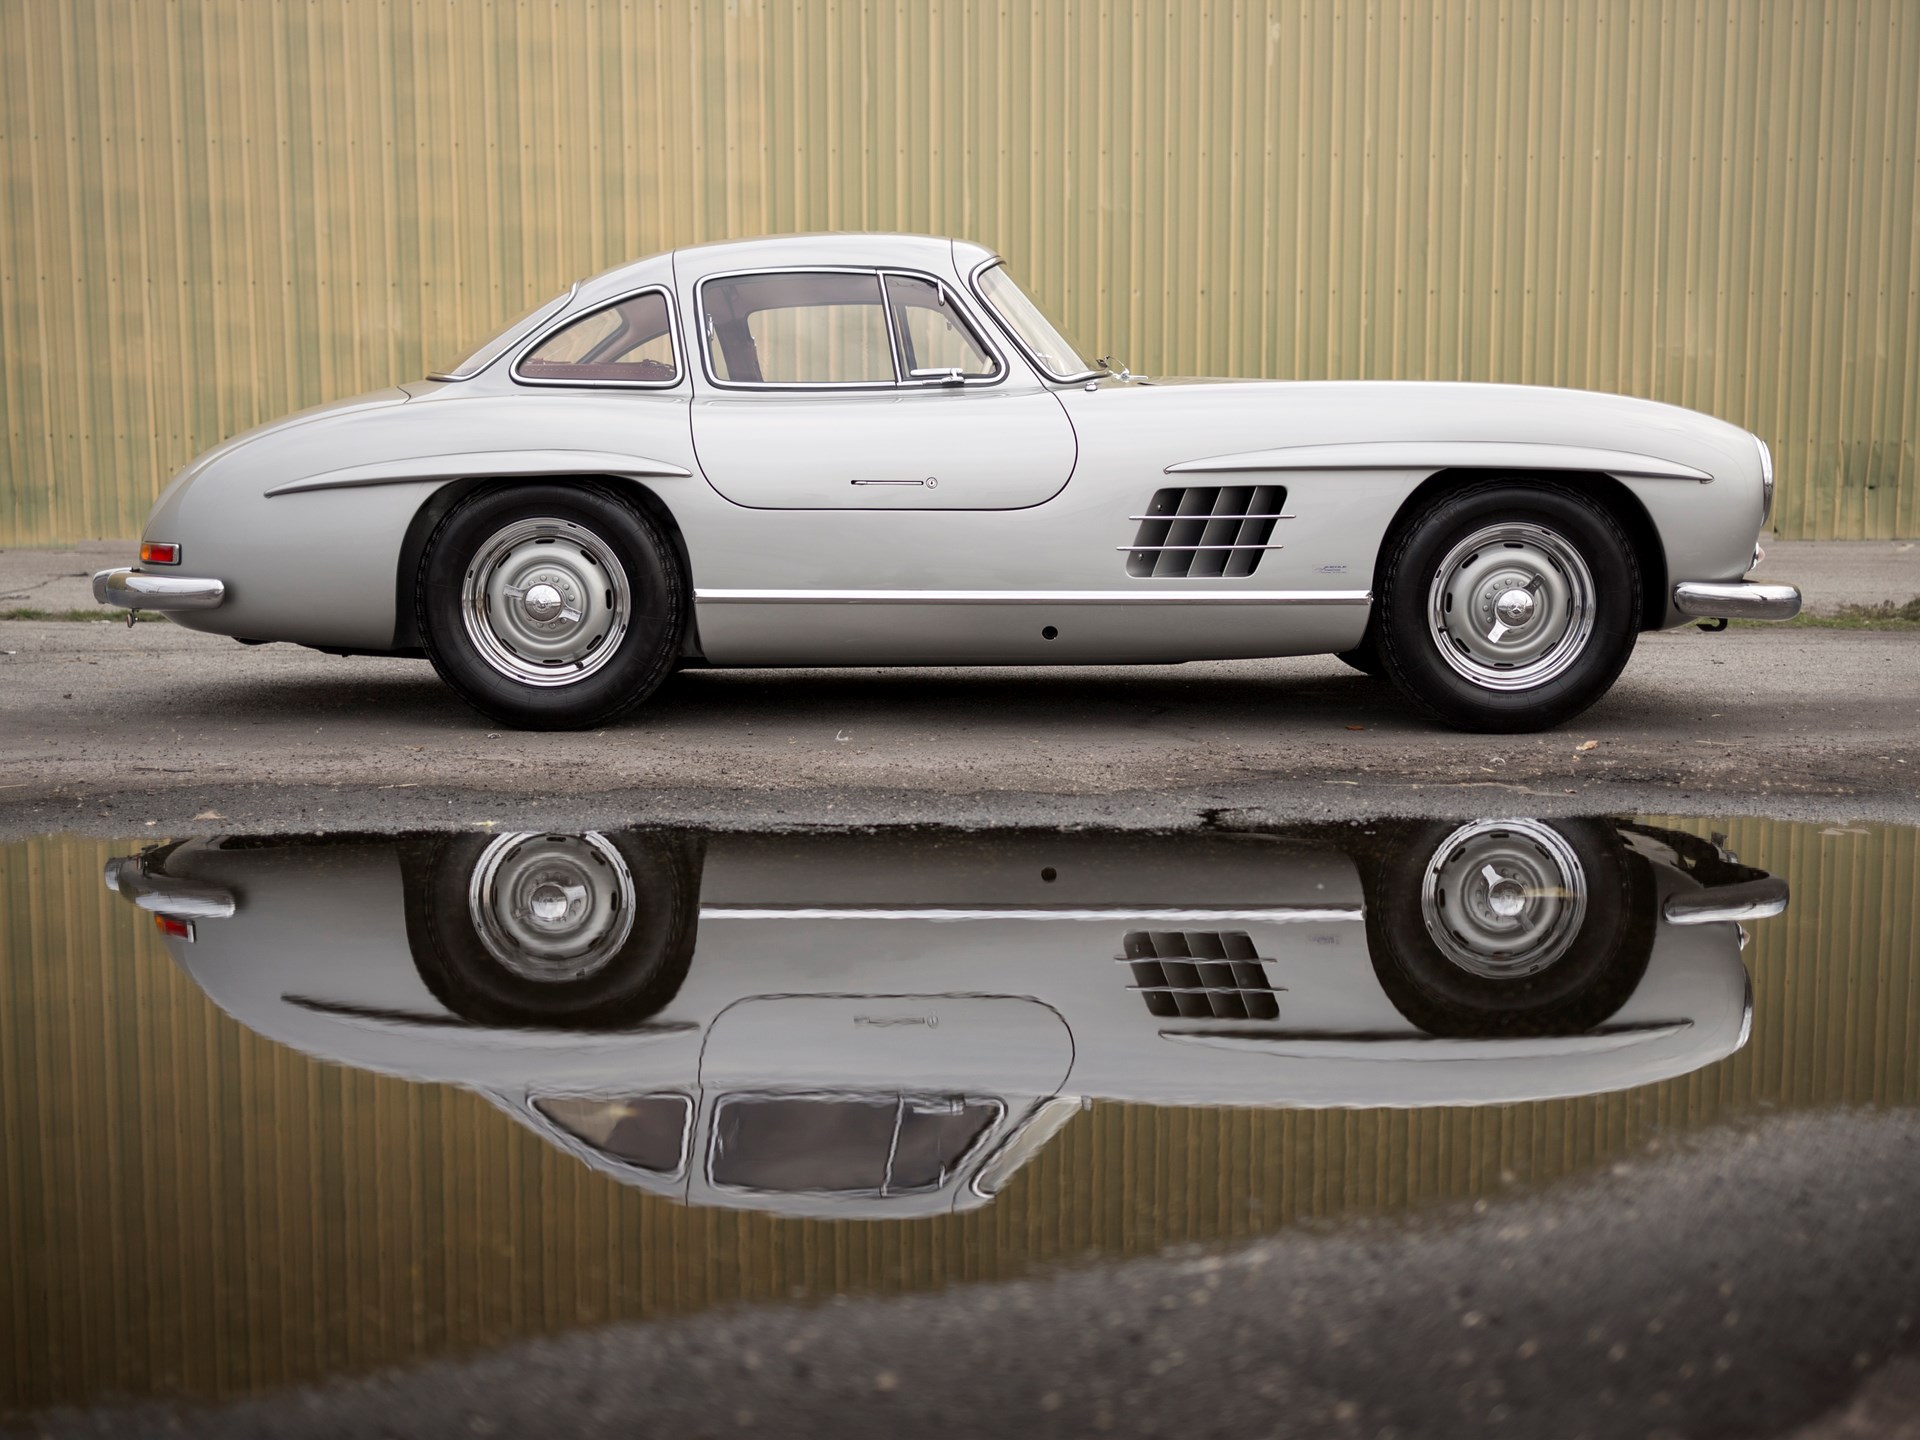 1955 Mercedes-Benz 300 SL Alloy Gullwing